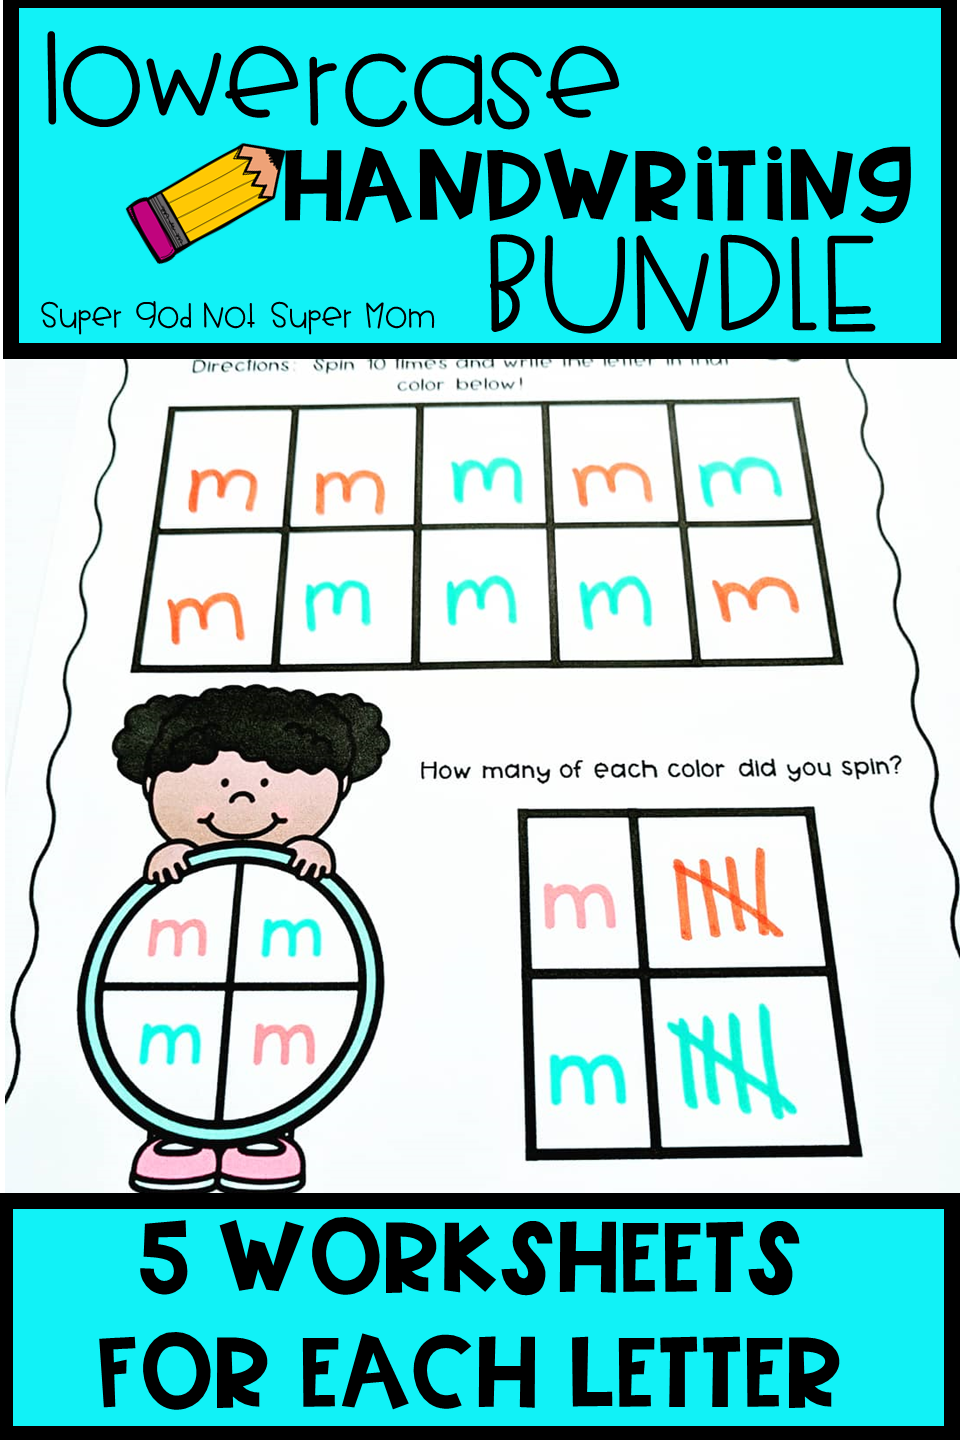 Alphabet Handwriting Worksheets – Super God, Not Super Mom